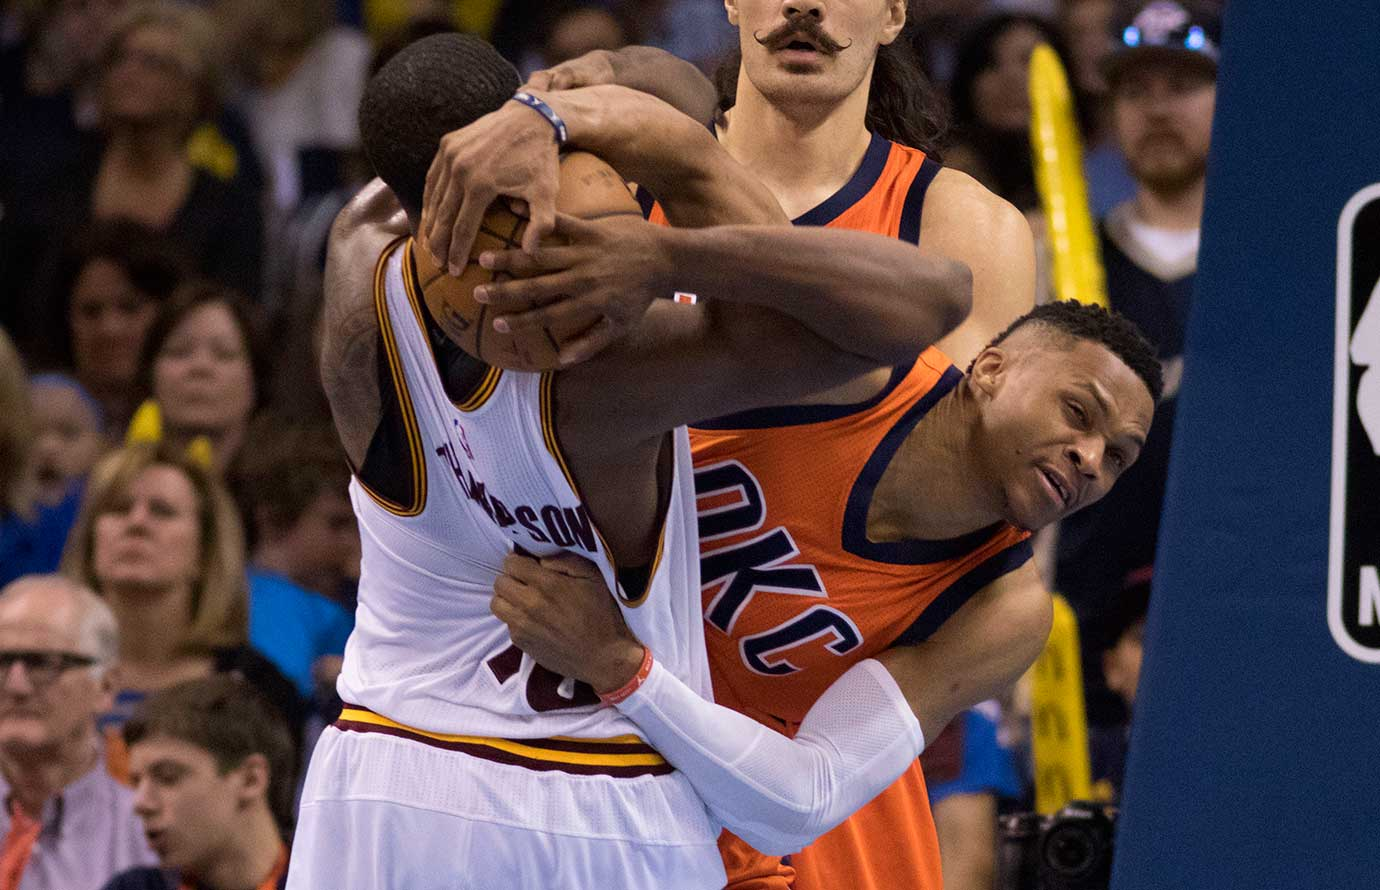 Russell Westbrook tries to wrestle the ball from Tristan Thompson during the Thunder-Cavaliers game.